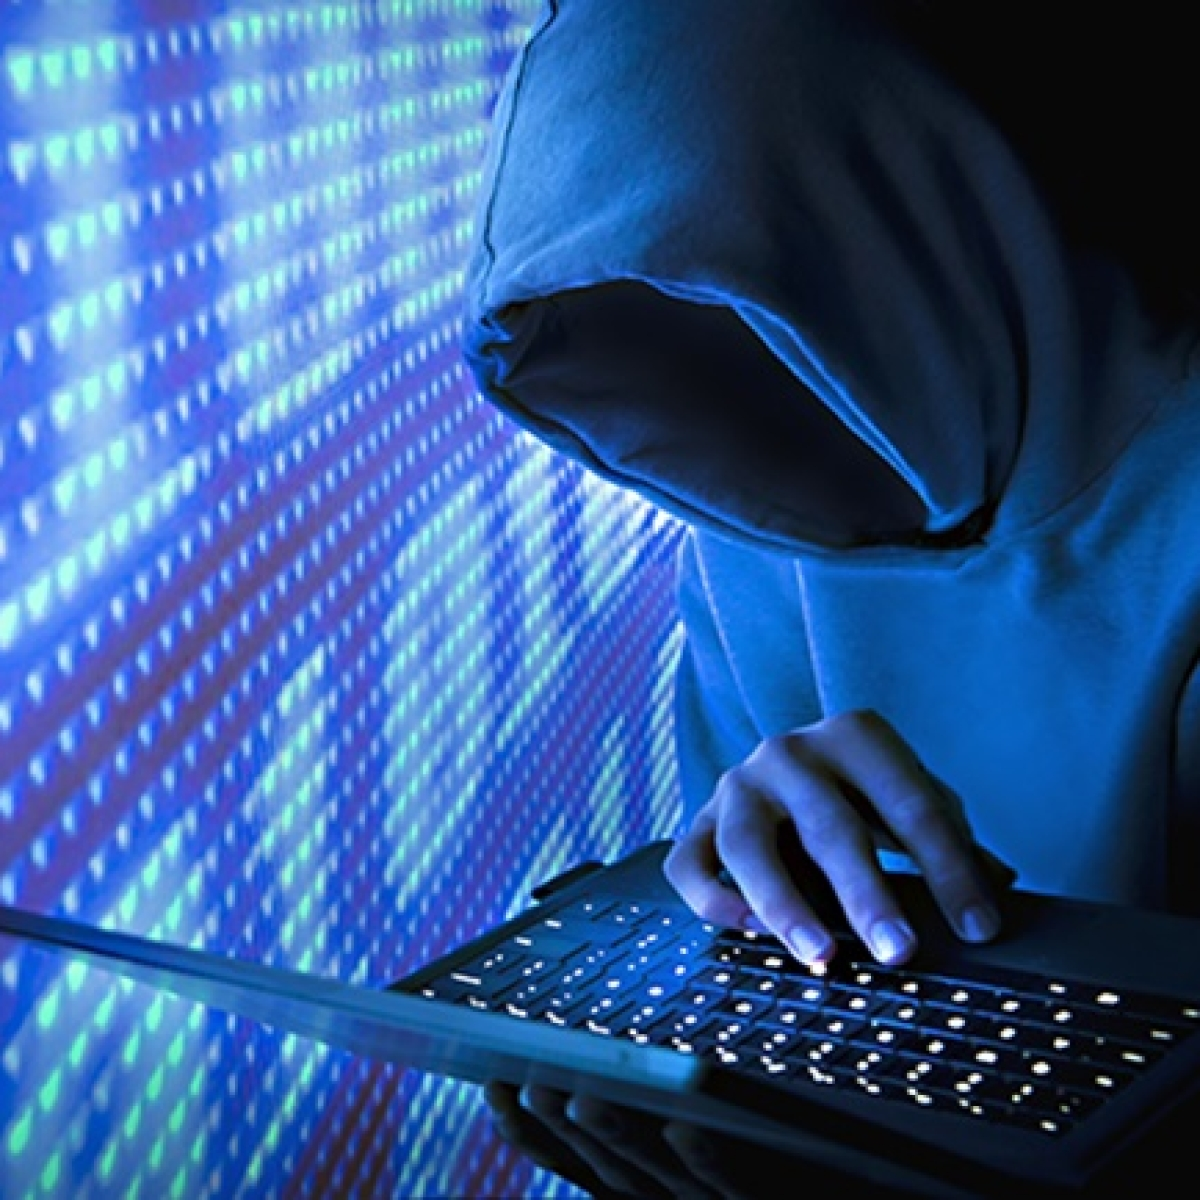 Mumbai Crime: Here's how cyber criminals are duping you though emails about electricity bills